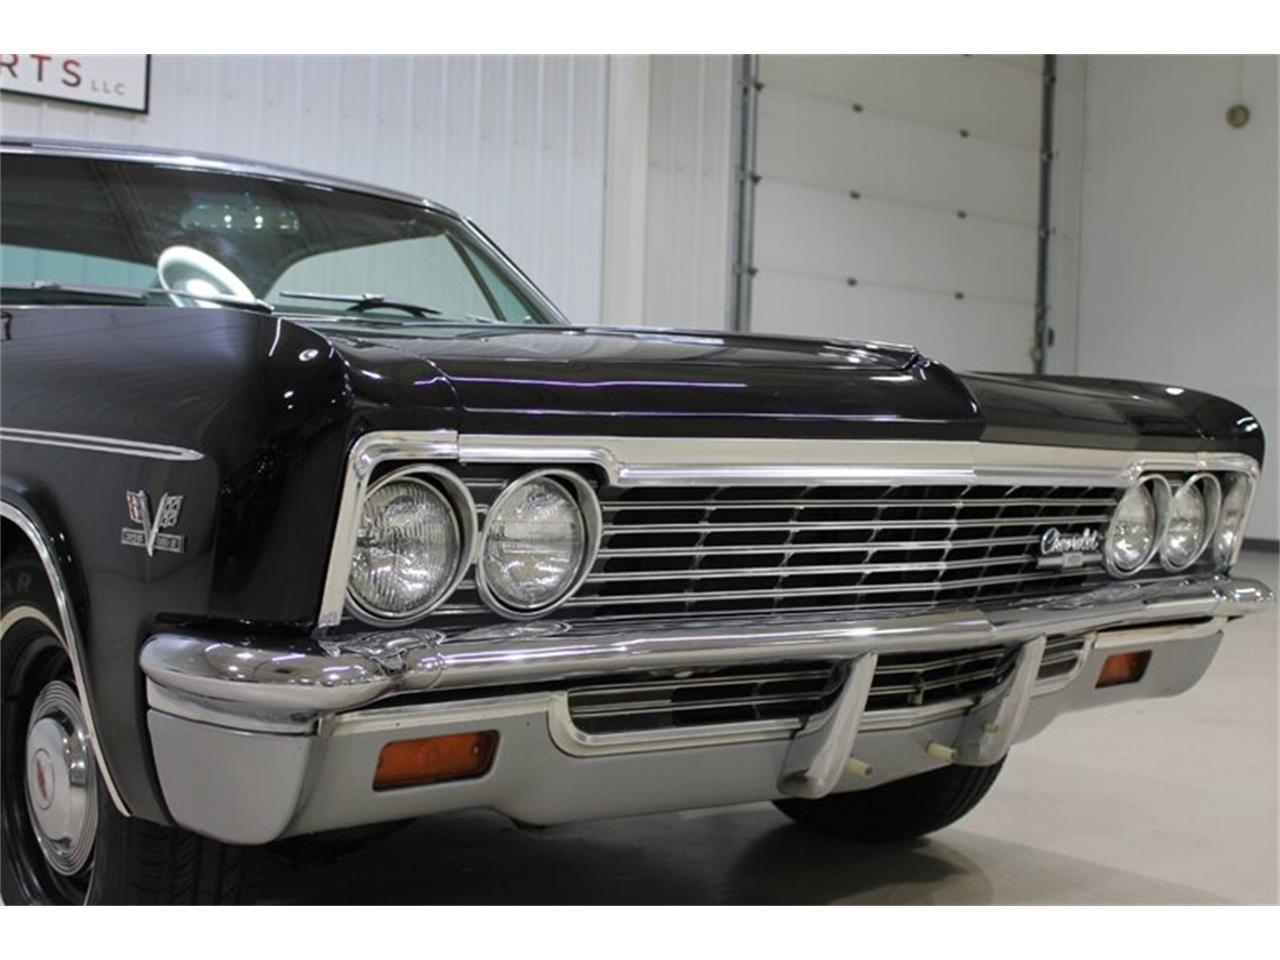 1966 Chevrolet Impala (CC-1267805) for sale in Fort Wayne, Indiana